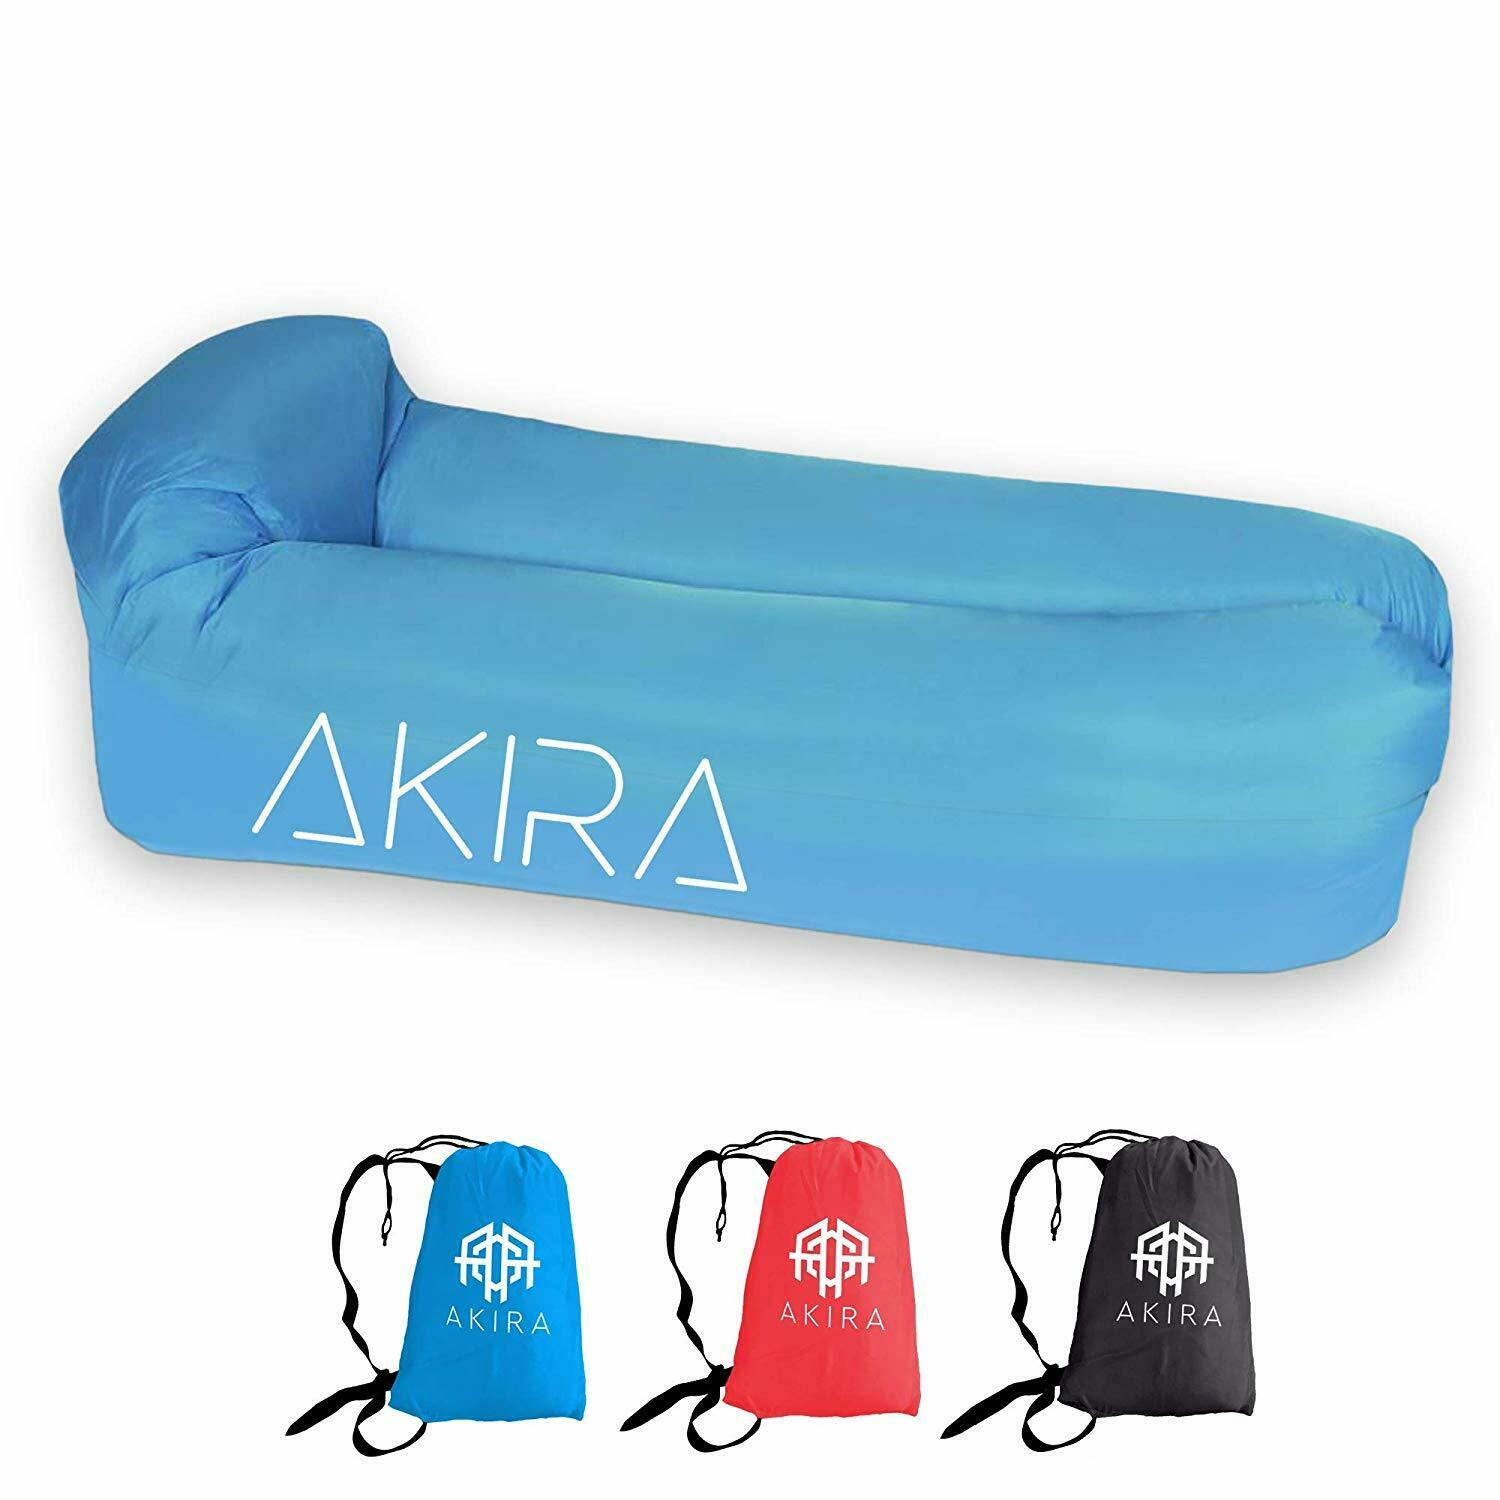 Inflatable Waterproof Lounger with Bottle Opener & Anti-Air Leaking Design -bluee